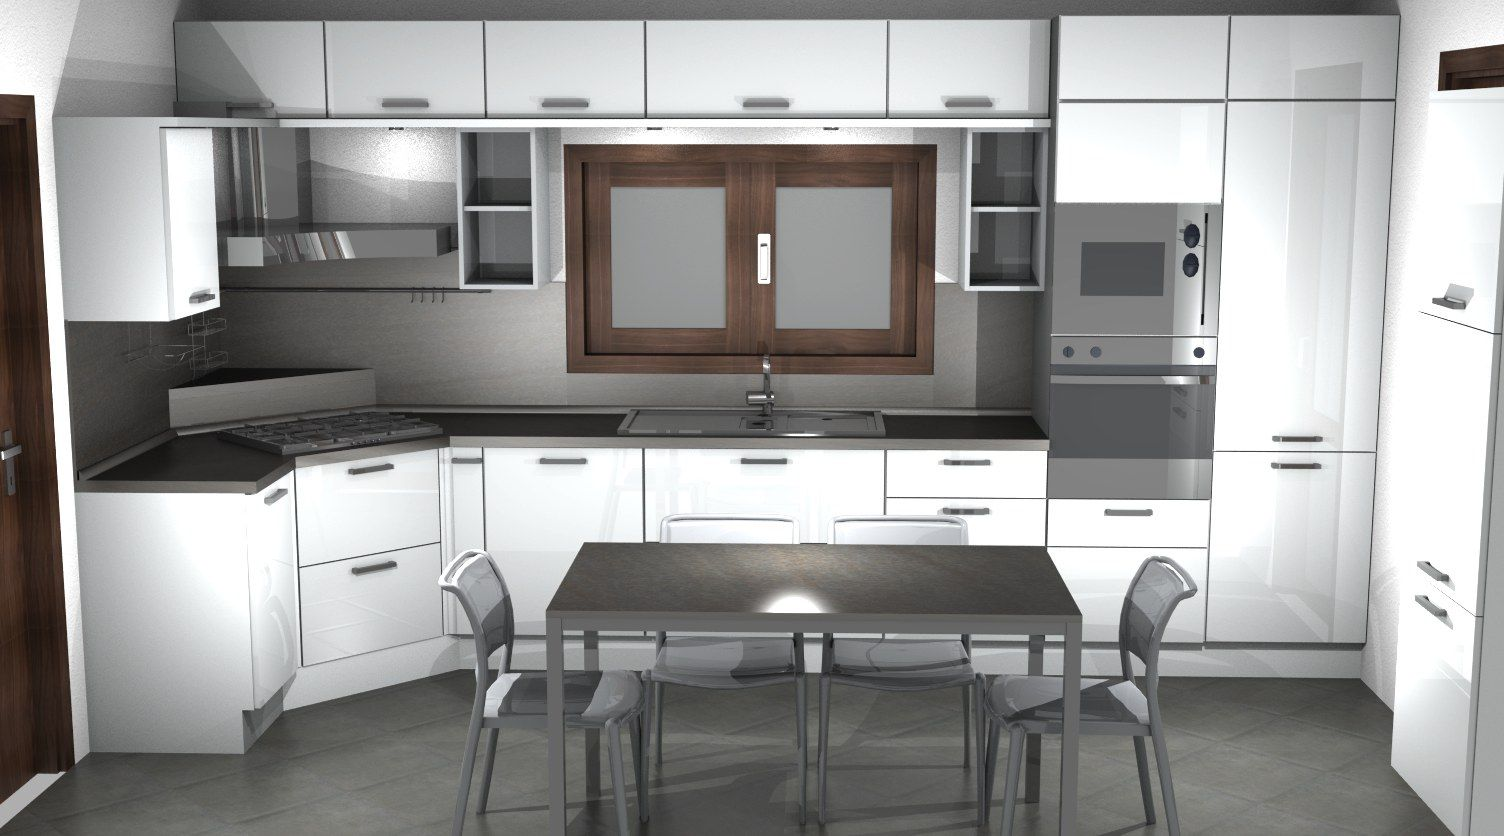 Cucina SAX Scavolini white by #Scavolini #Sax #kitchen #kitchens ...